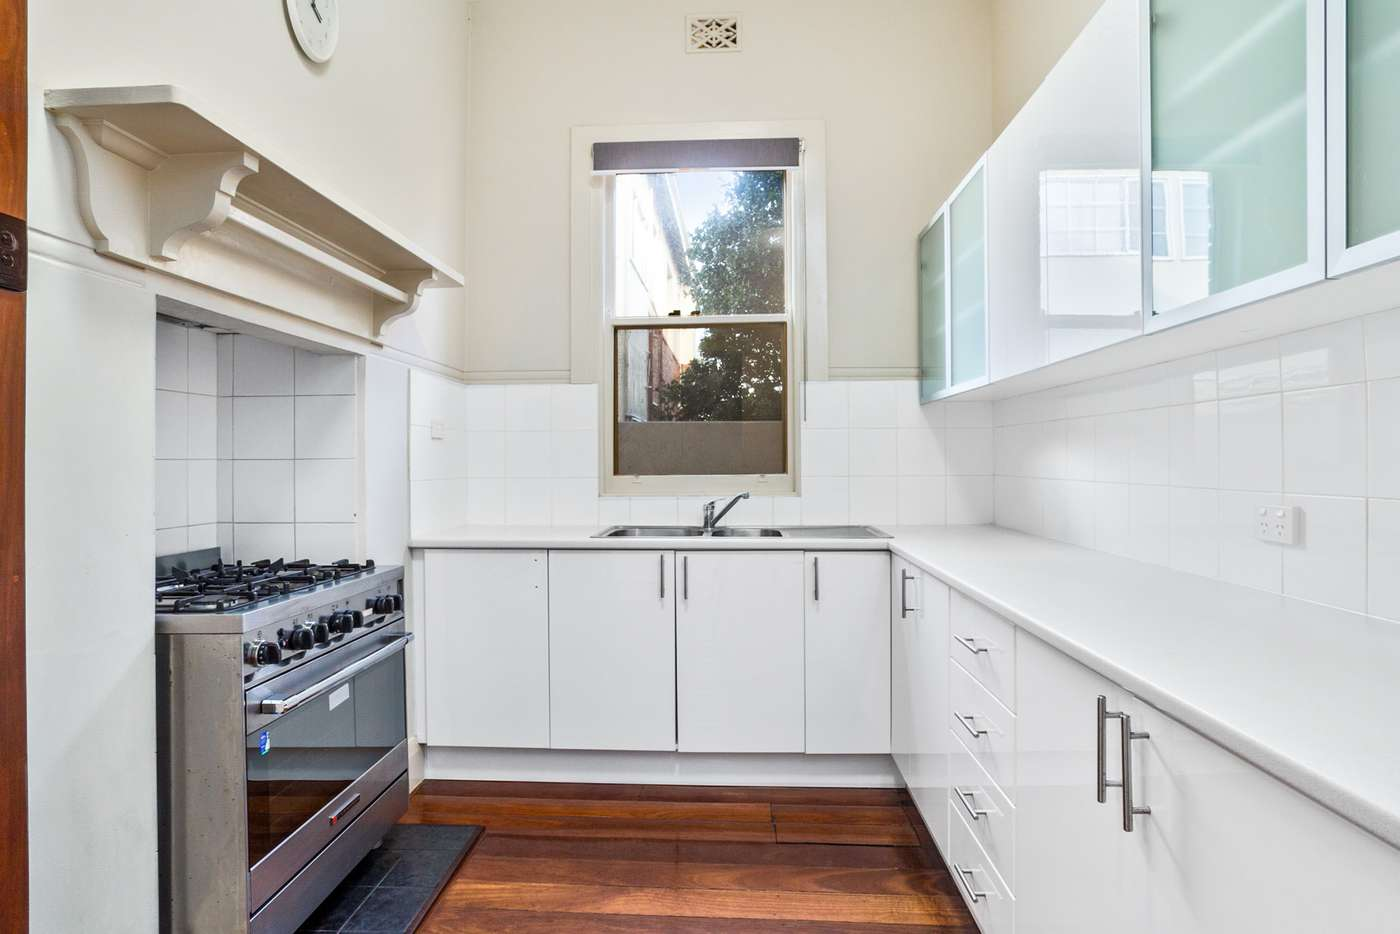 Sixth view of Homely apartment listing, 1/94 Walcott Street, Mount Lawley WA 6050